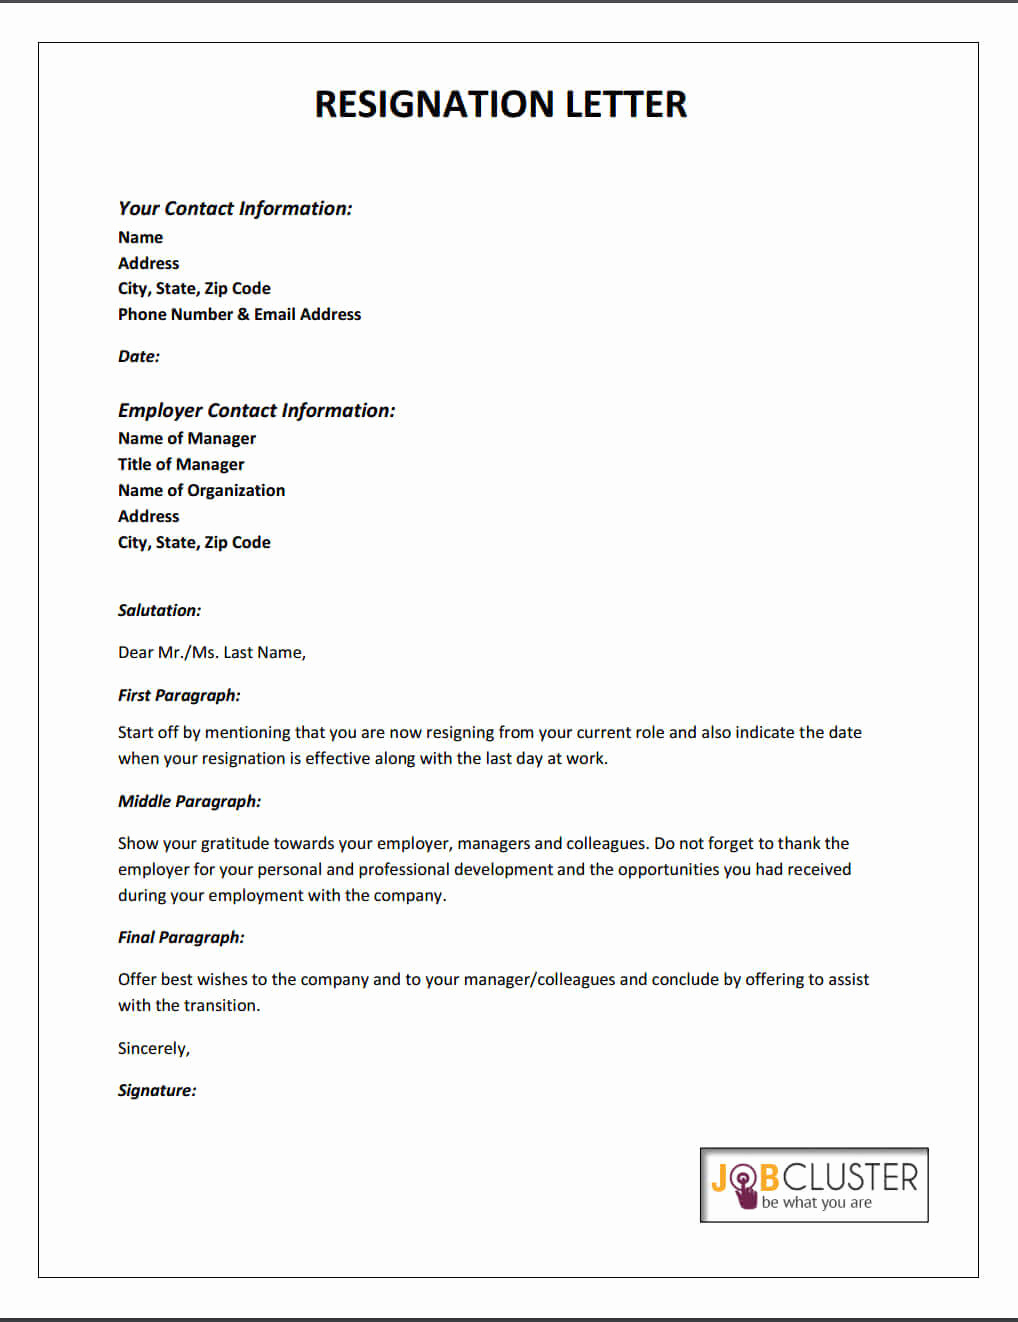 Template for Resignation Letter Awesome Writing A Resignation Letter